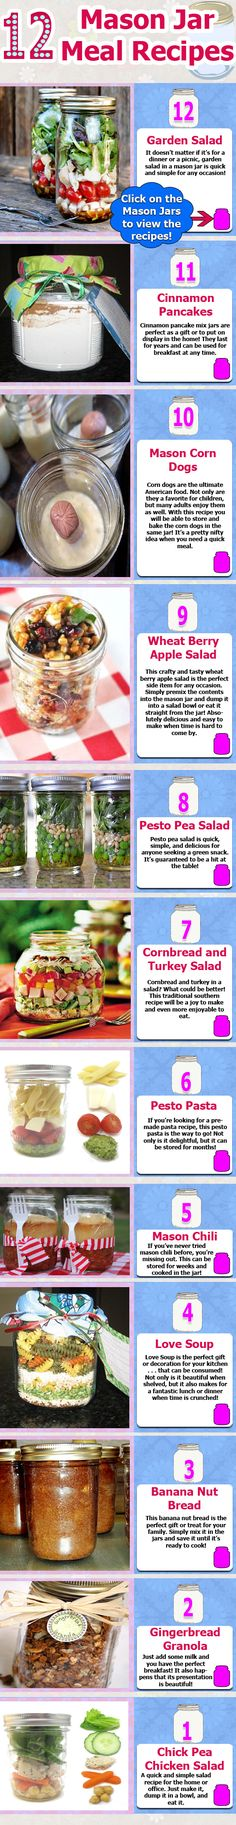 12 Mason Jar Recipes